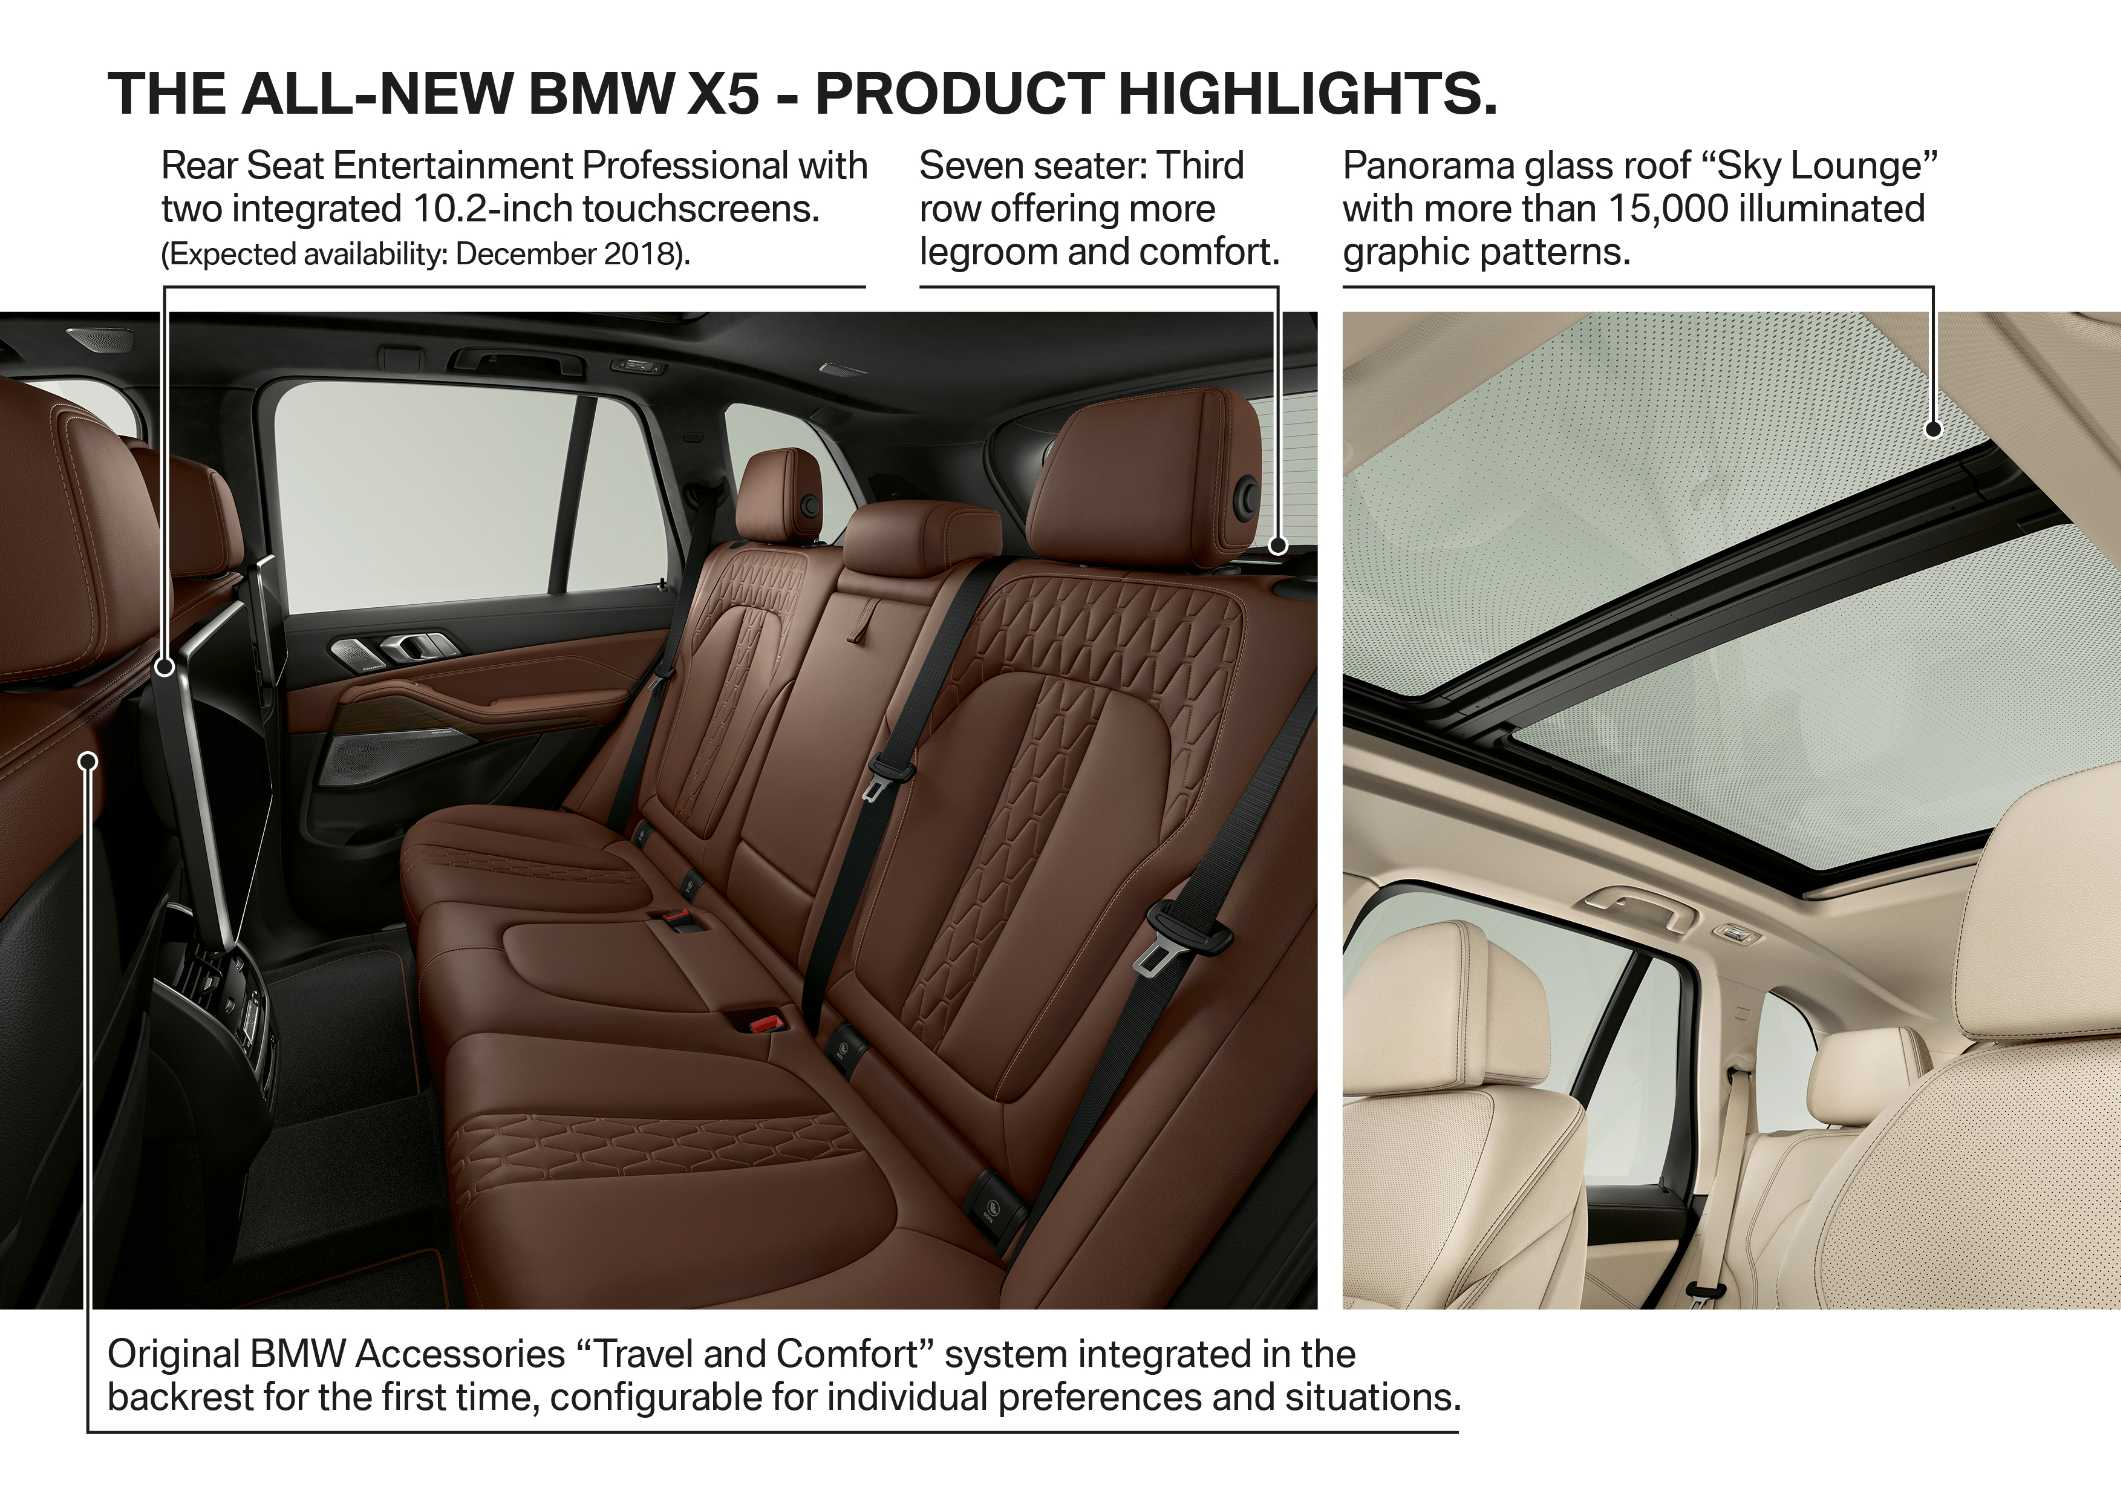 The all-new BMW X5 - Product Highlights (06/2018).